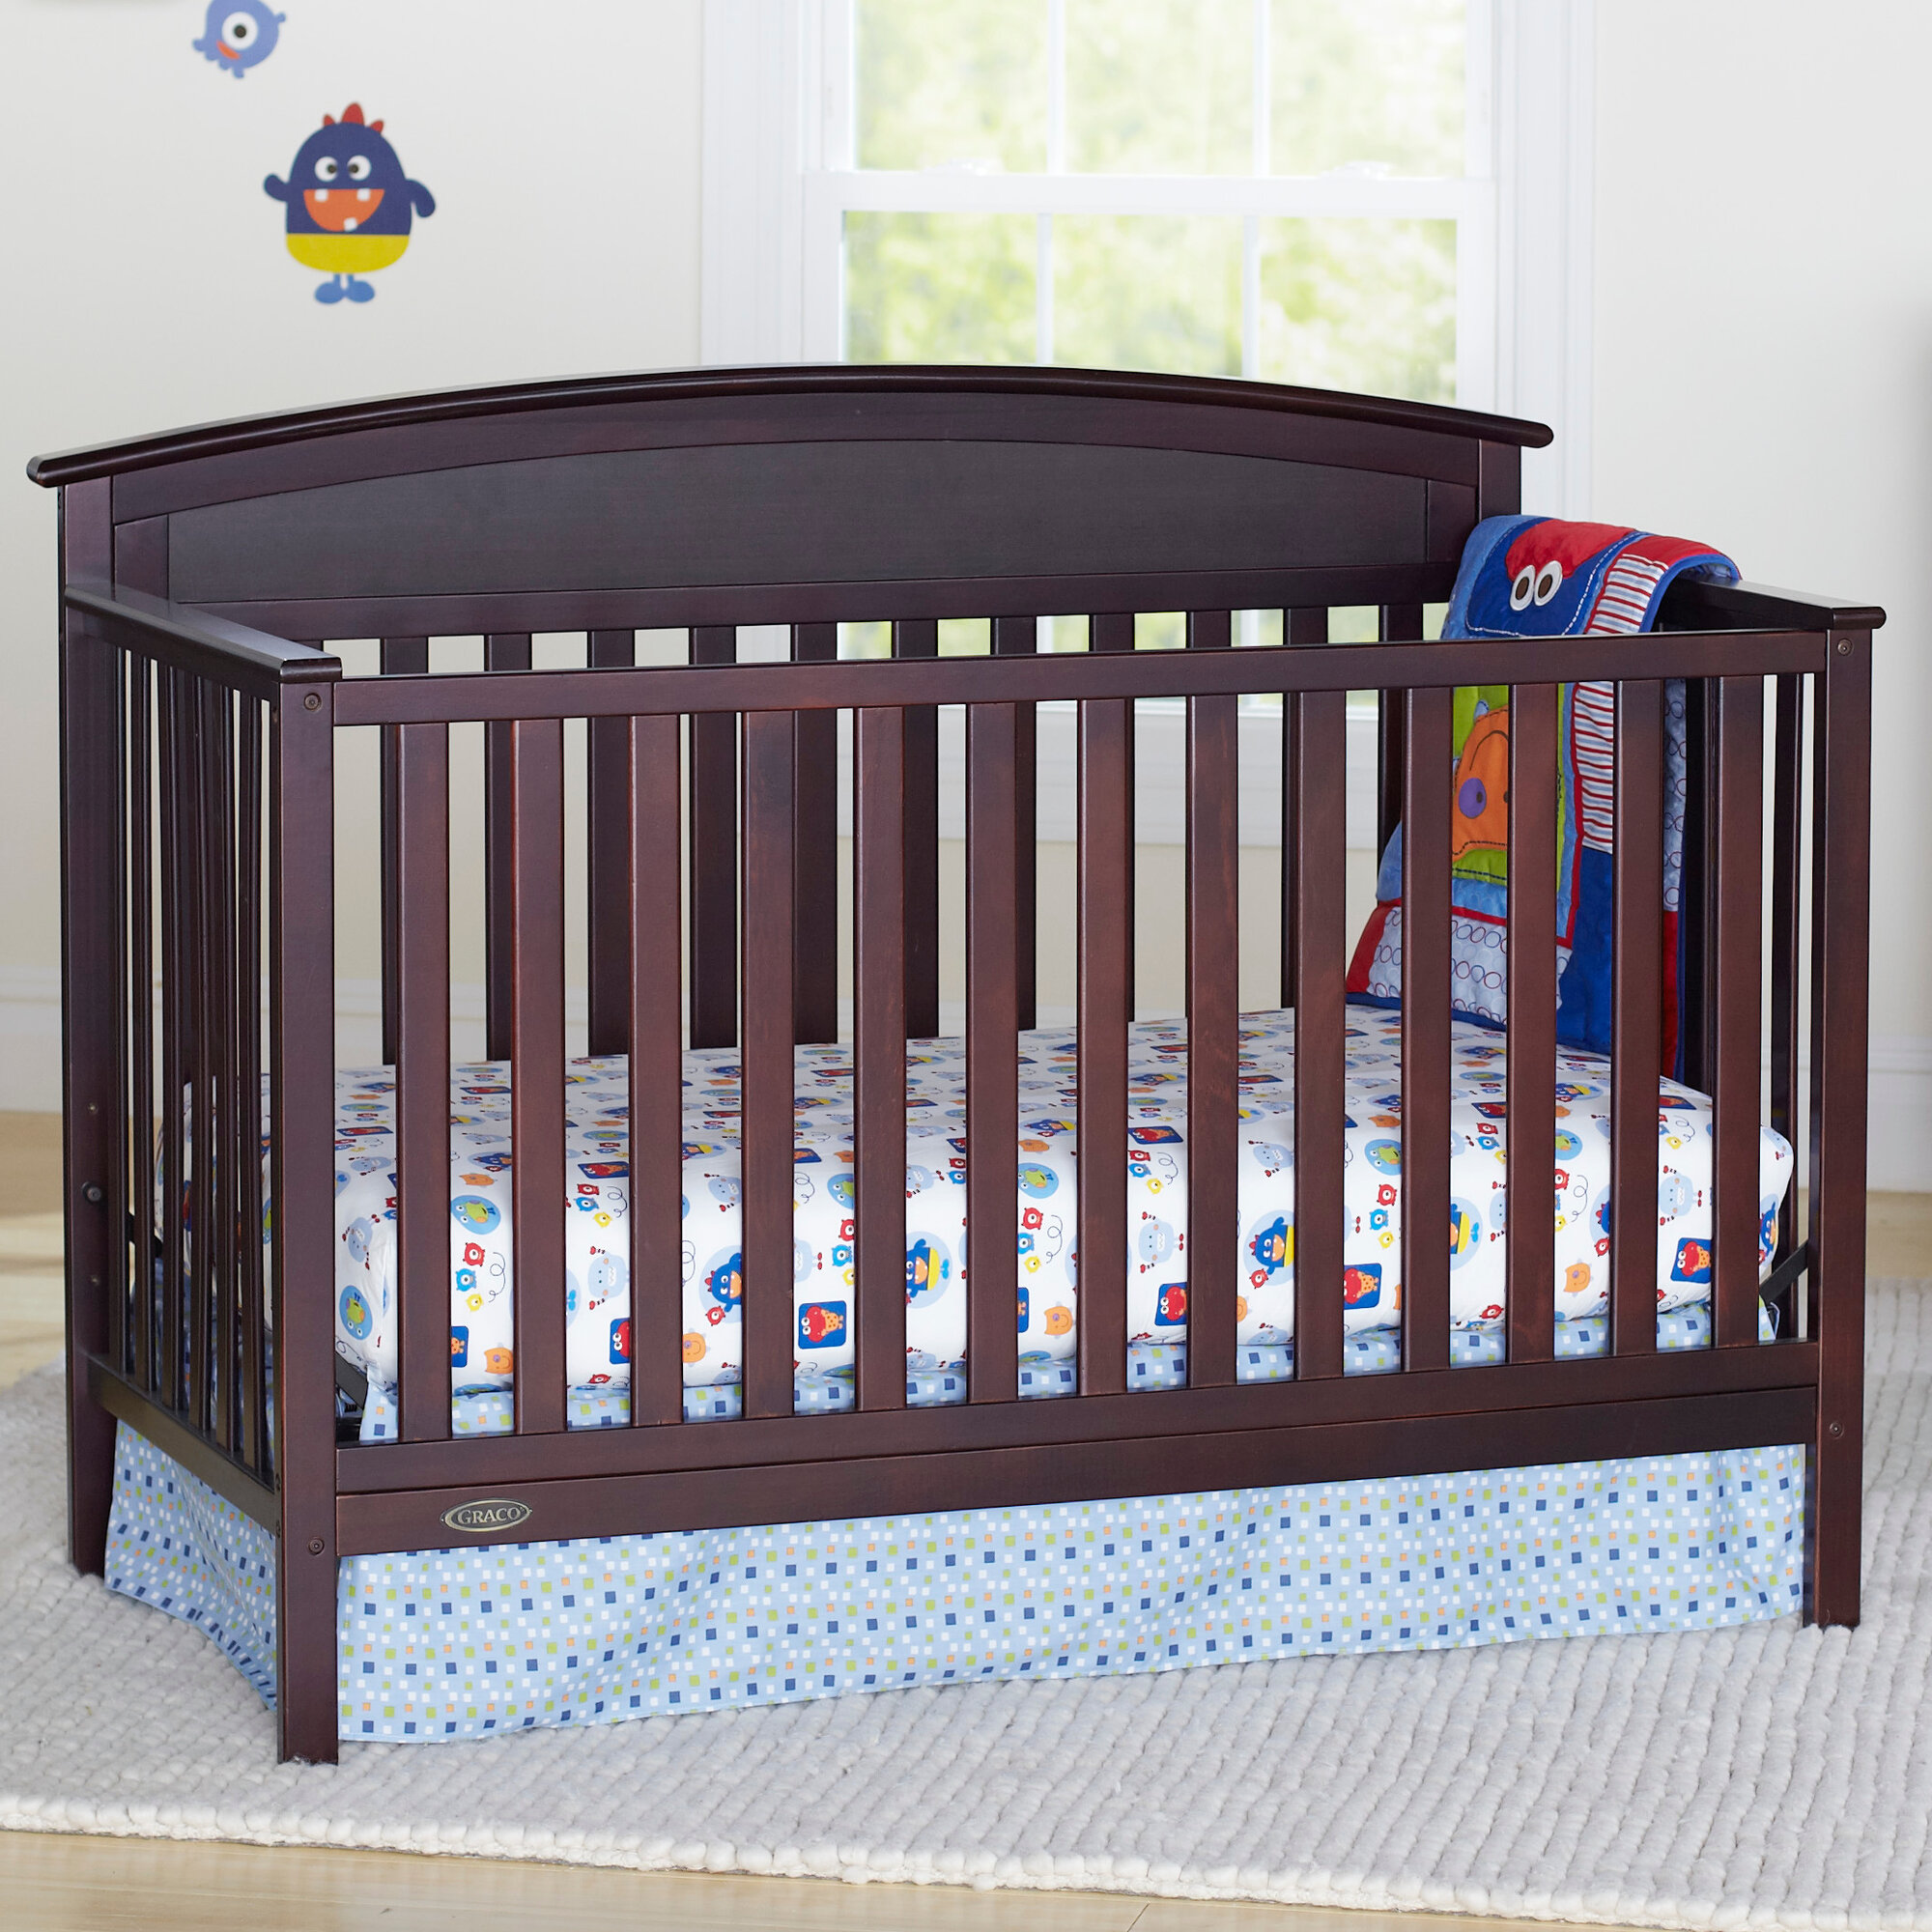 Graco 3 In 1 Convertible Crib: Graco Benton 3 In 1 Convertible Crib